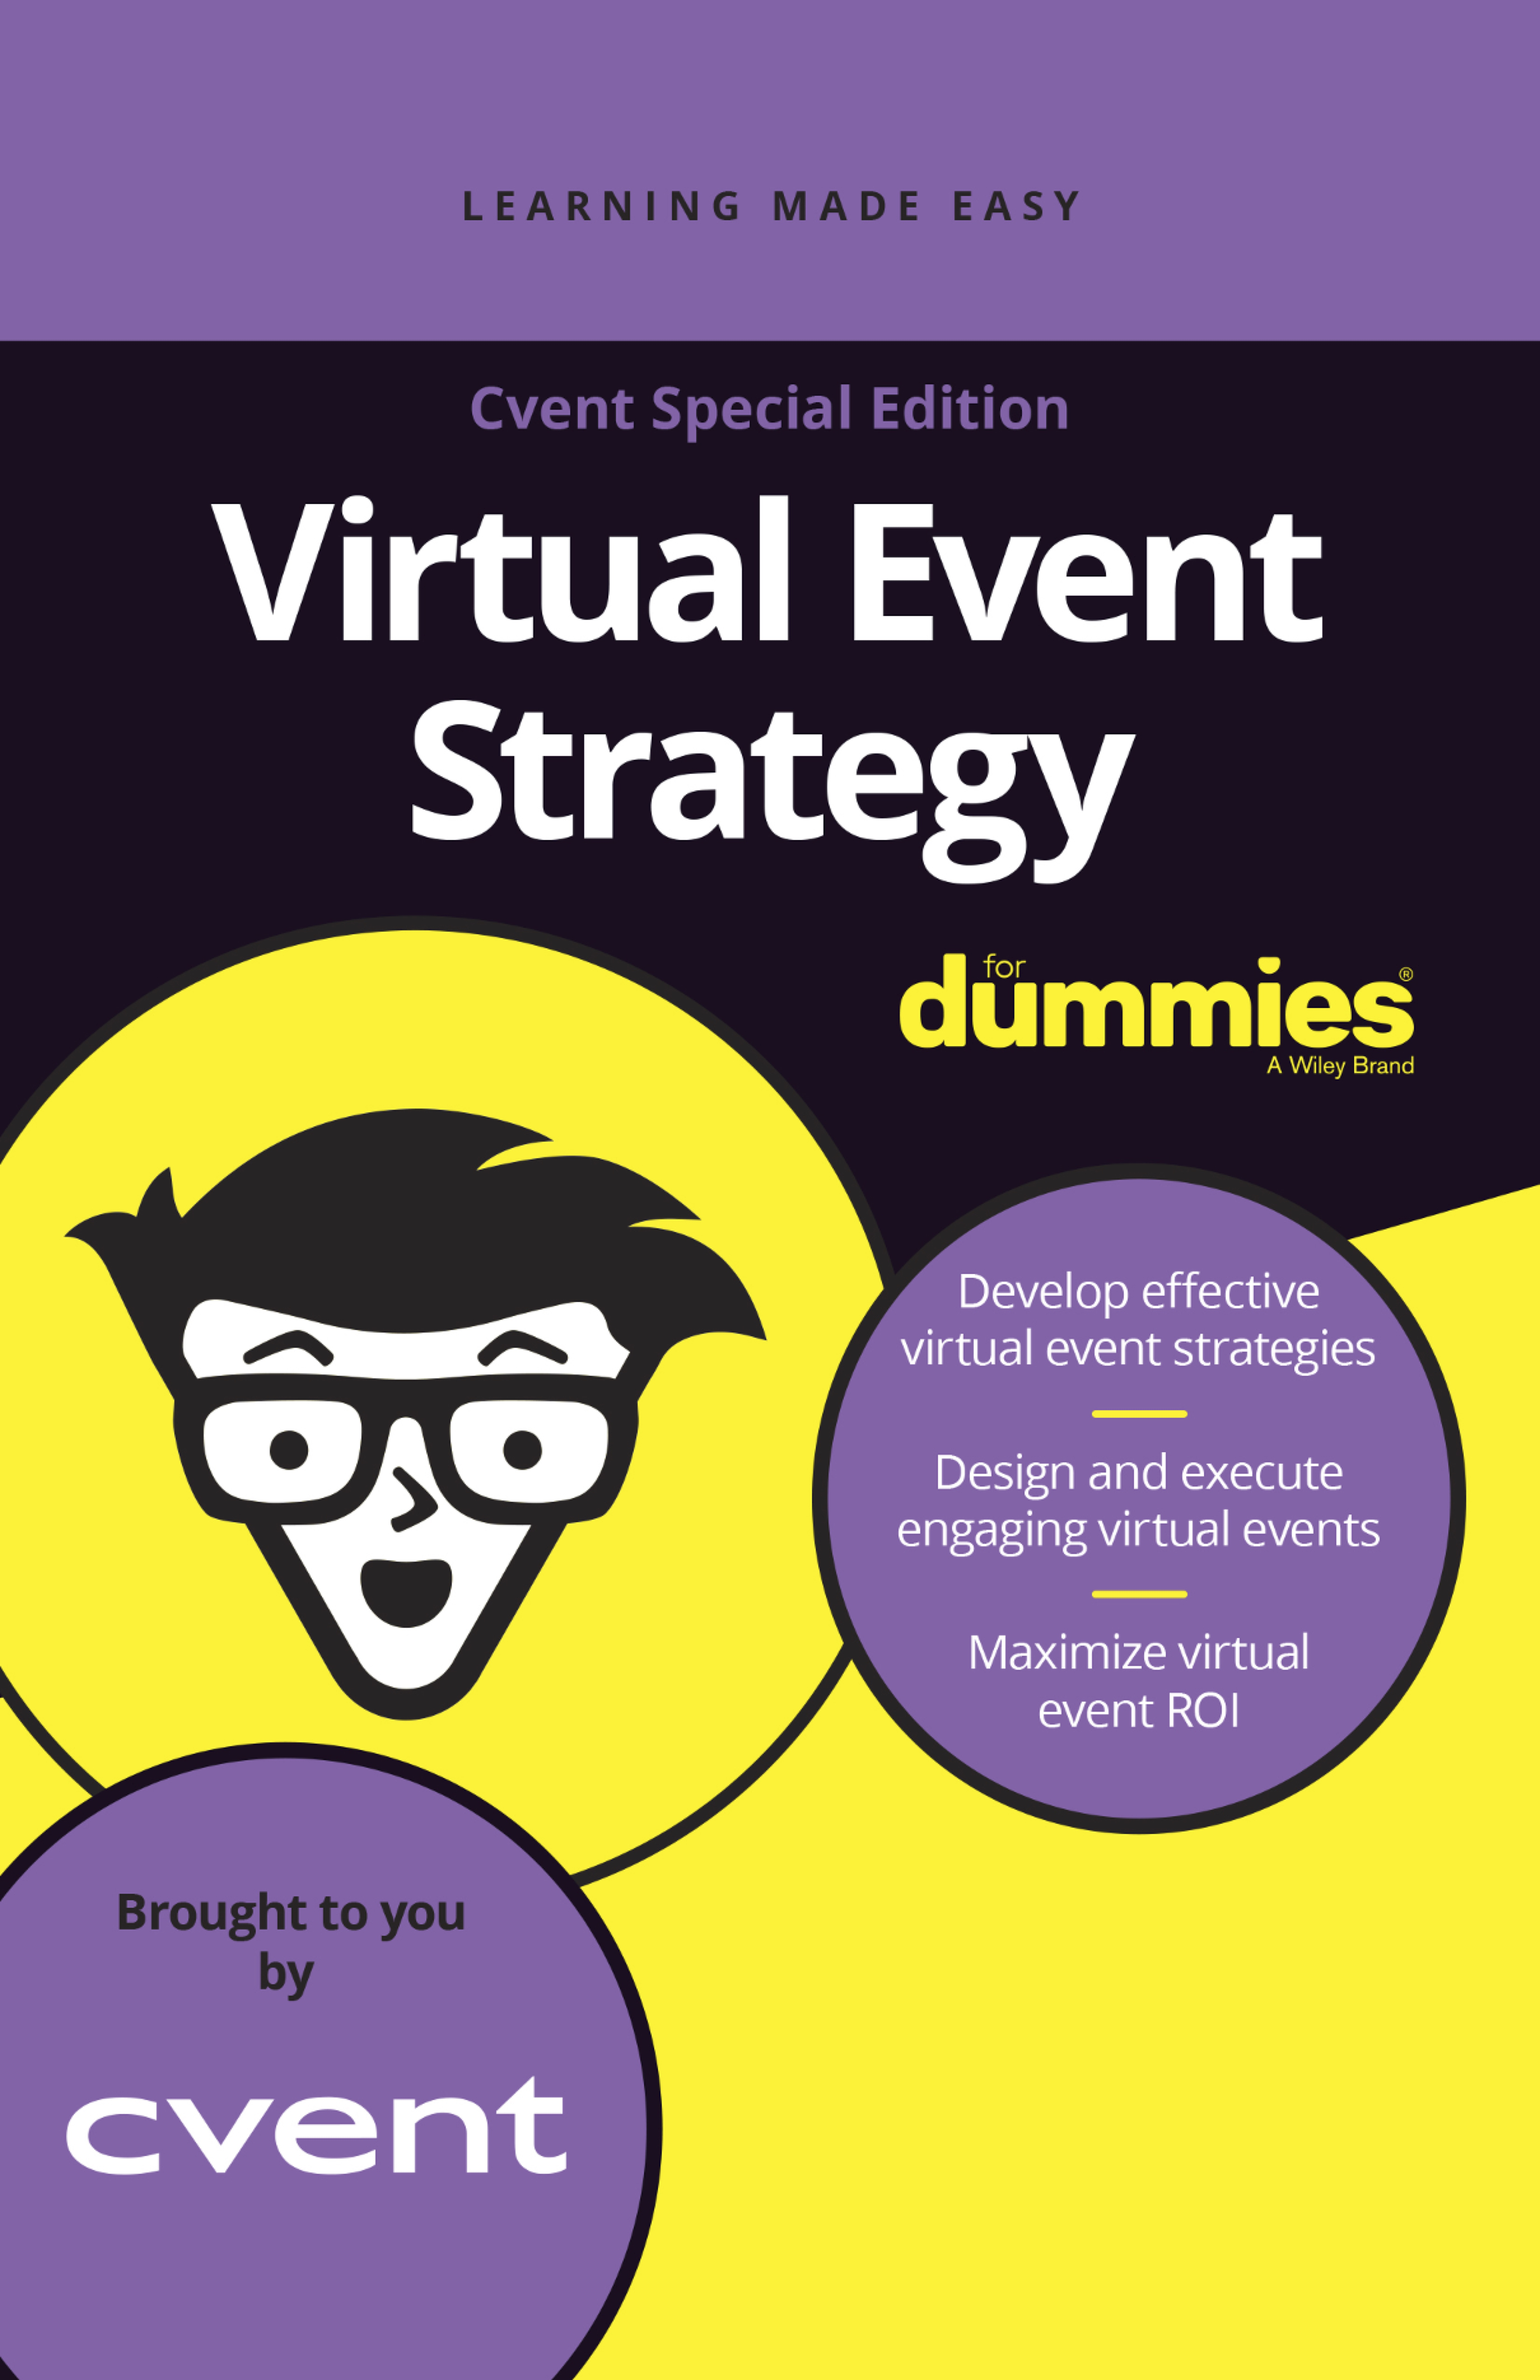 Virtual-Event-Strategy-For-Dummies-Cvent.jpg